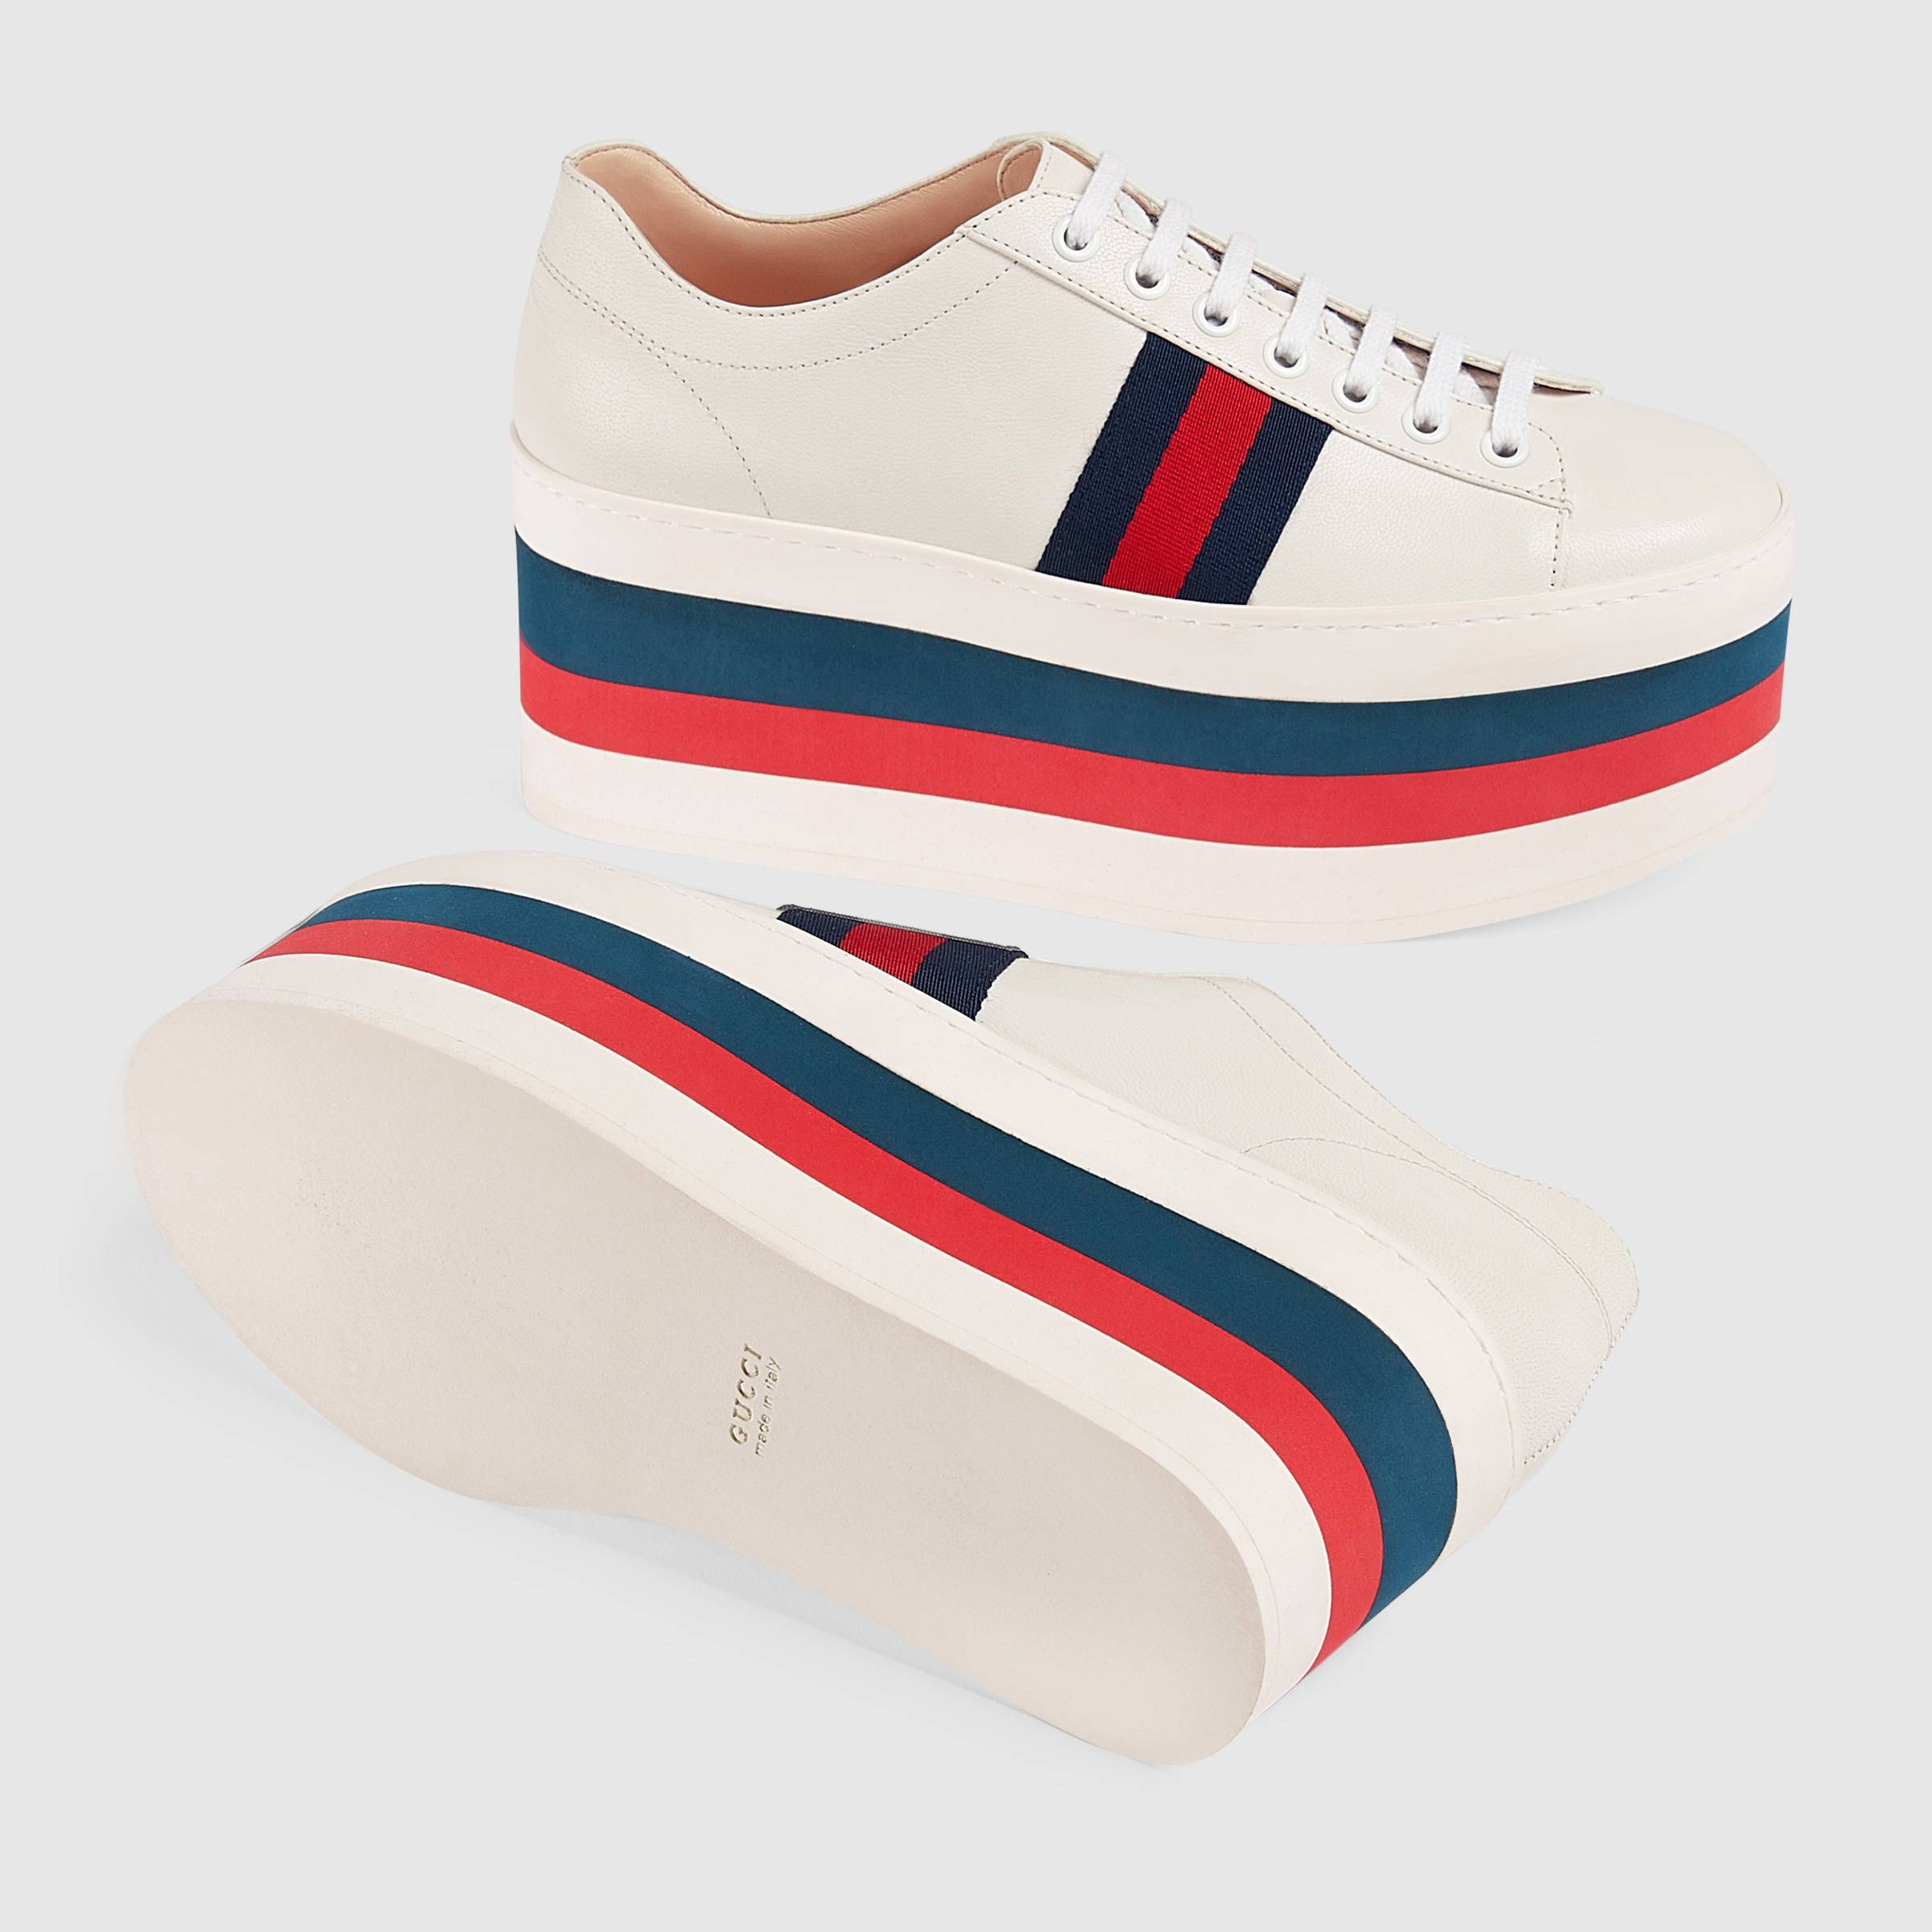 quality design 2730c 4dc09 Gucci Leather platform sneaker Detail 5 Gucci Shoes Sneakers, Fab Shoes,  Leather Sneakers,